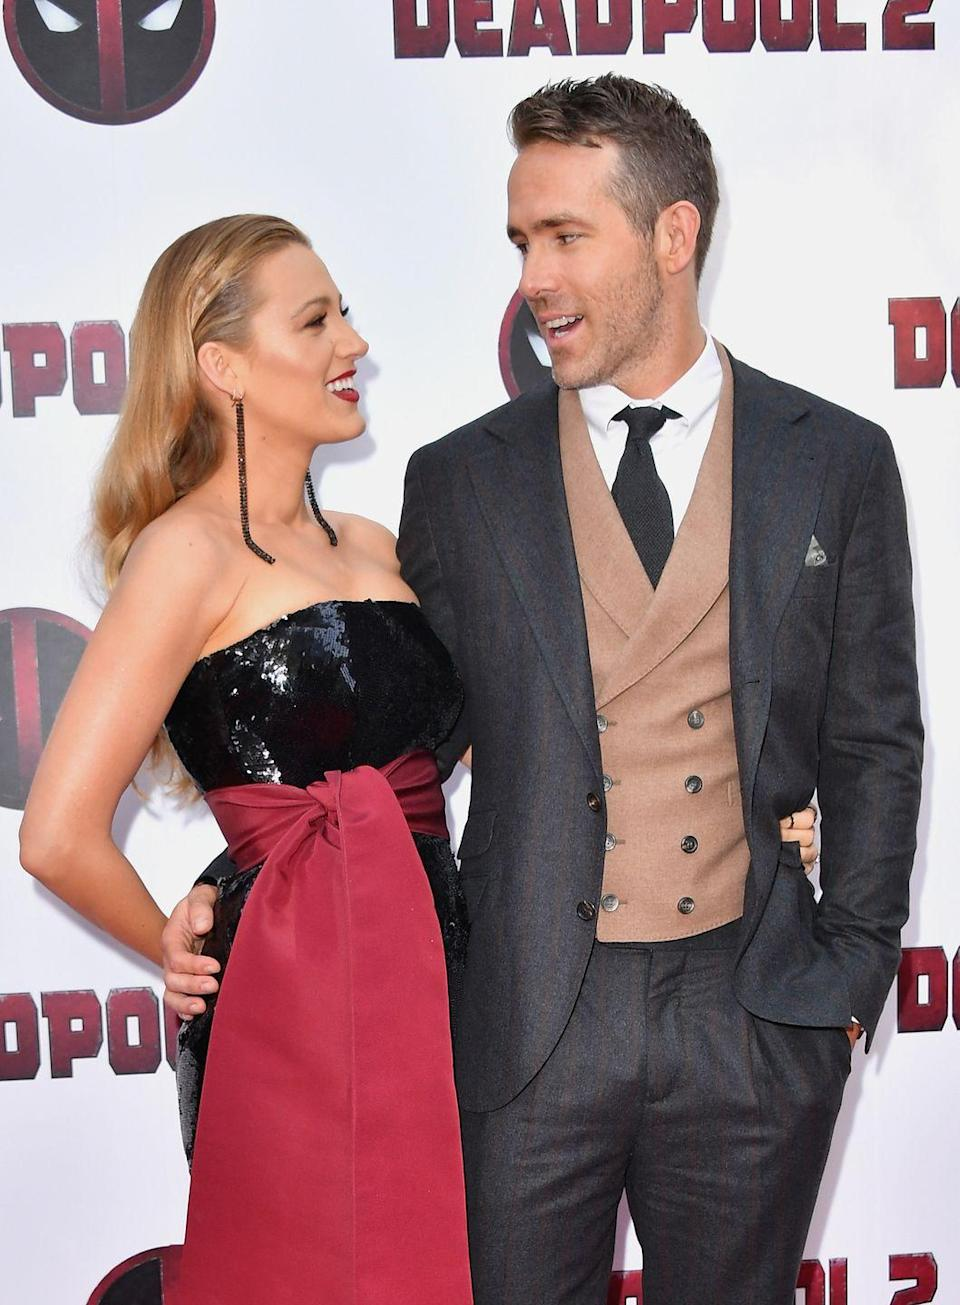 <p>The look of love at a screening of Reynolds' film Deadpool 2. </p>